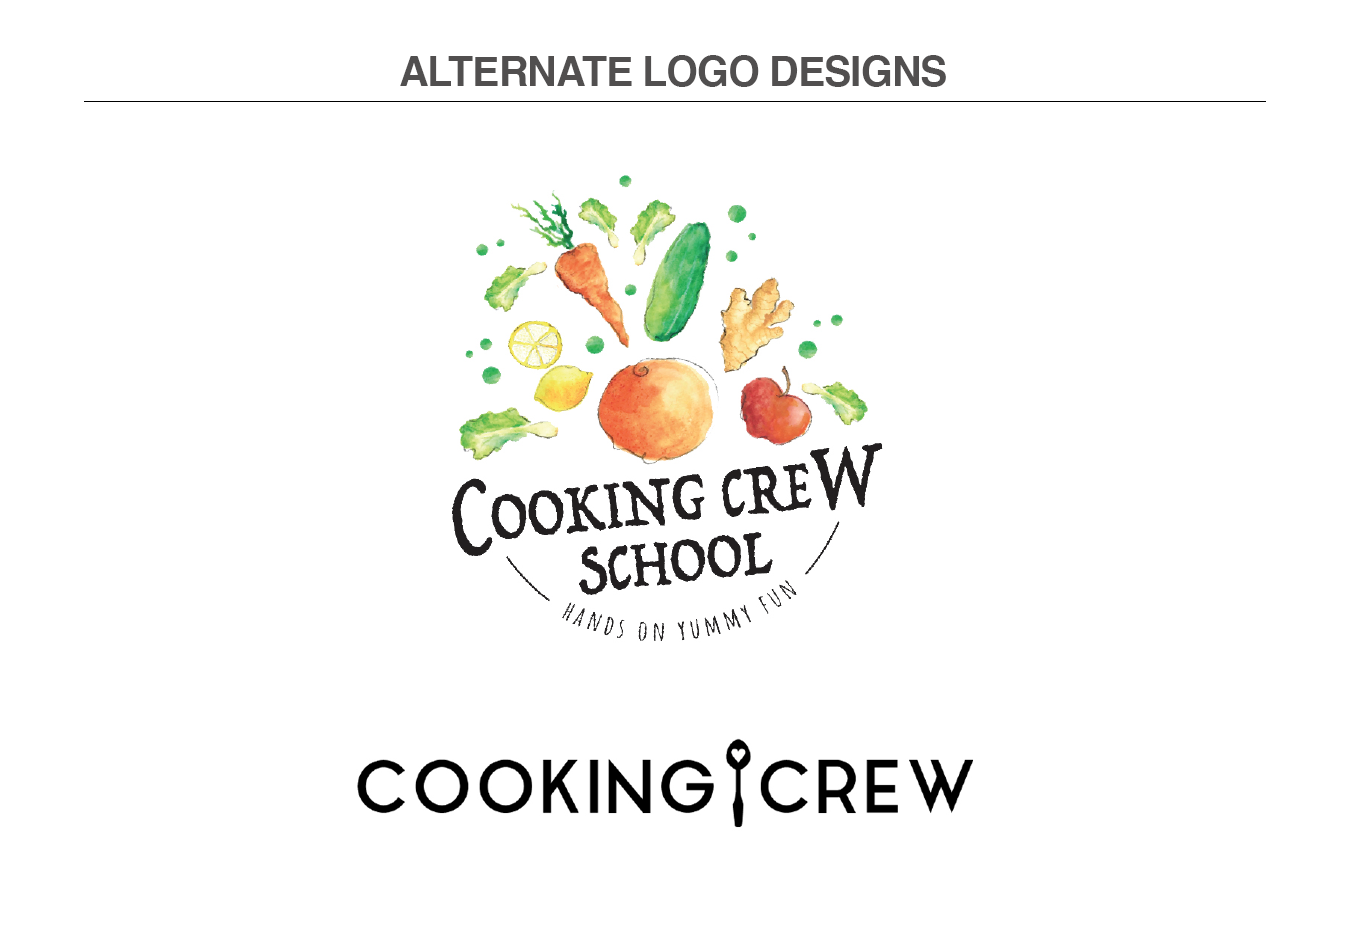 ALTERNATE LOGO DESIGNS